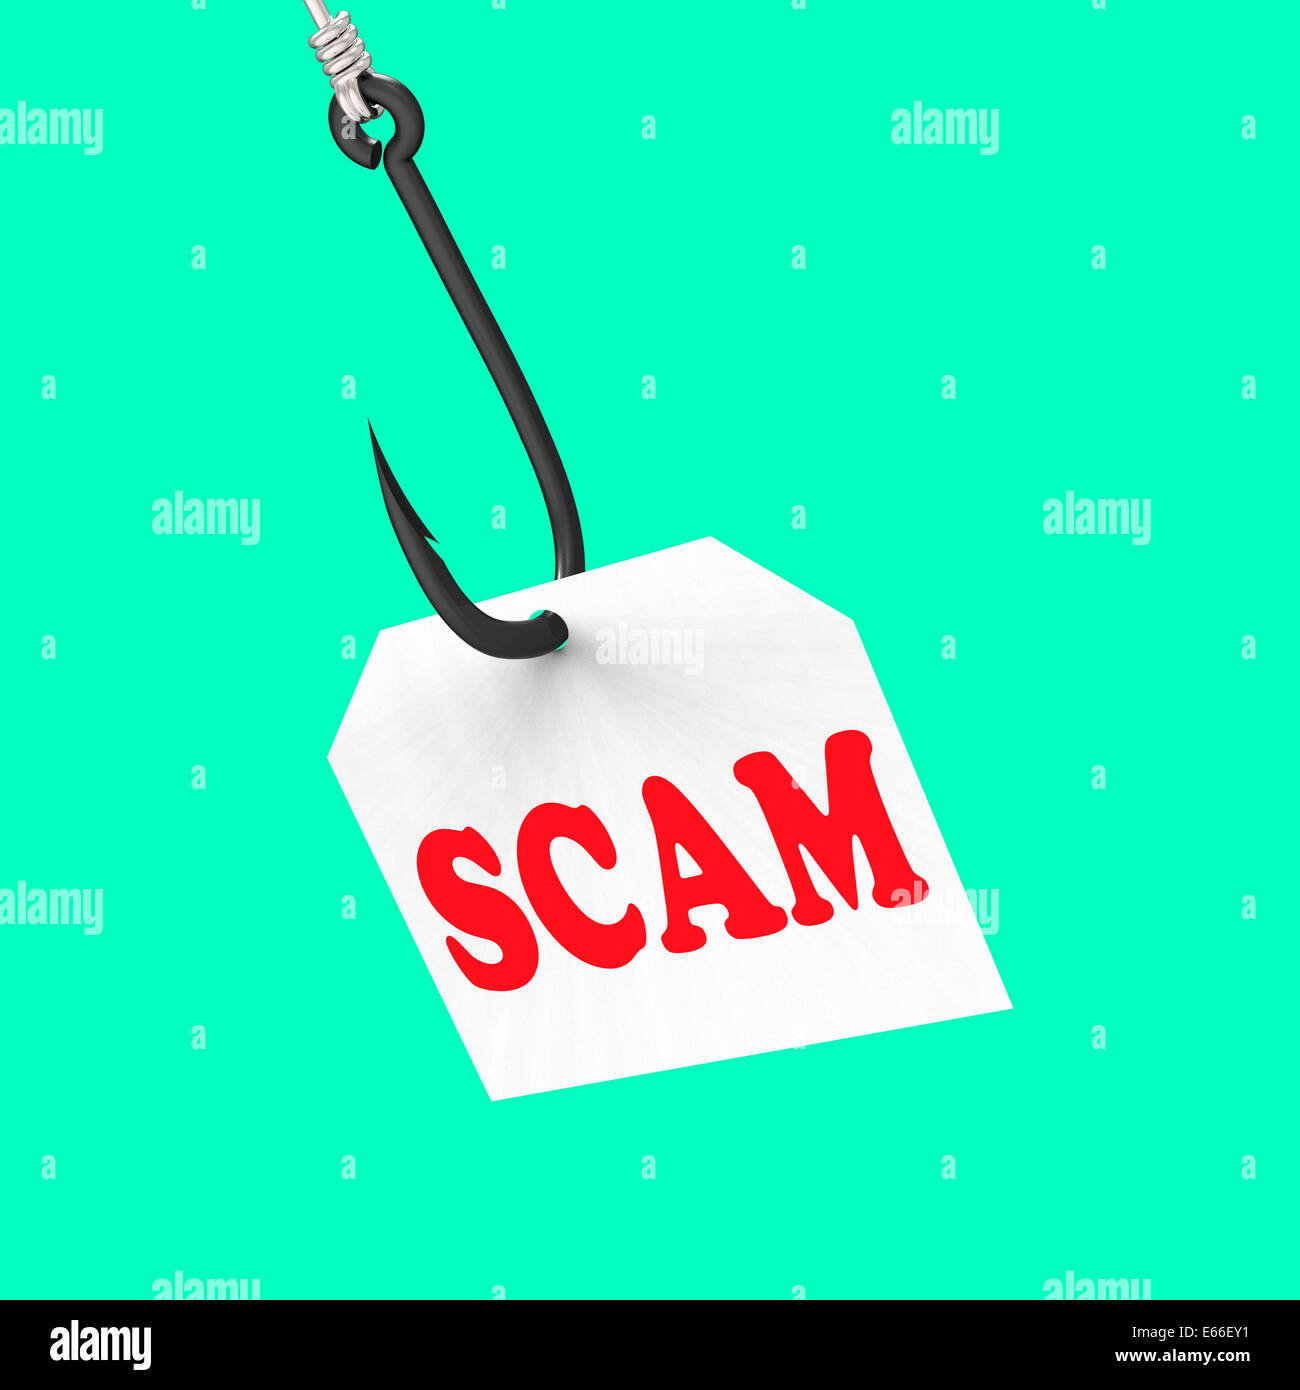 Scam Meaning Fraud Rip Off Deceive Stock Photos & Scam Meaning Fraud